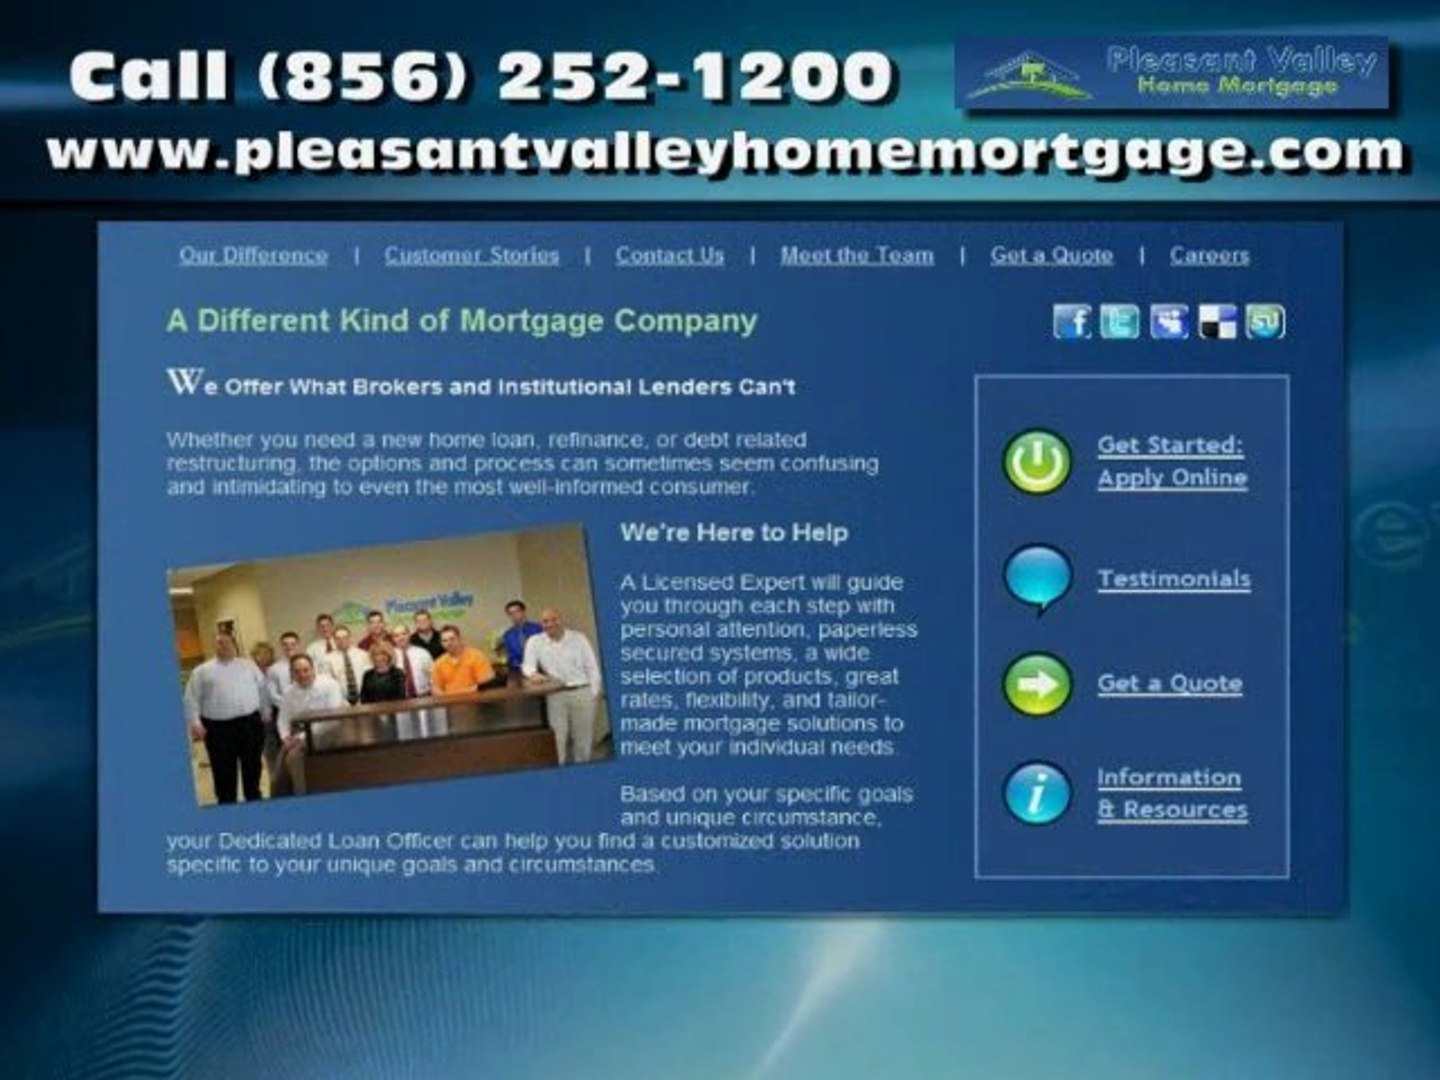 Mortgage Loans in Moorestown NJ - Pleasant Valley Home Mortgage